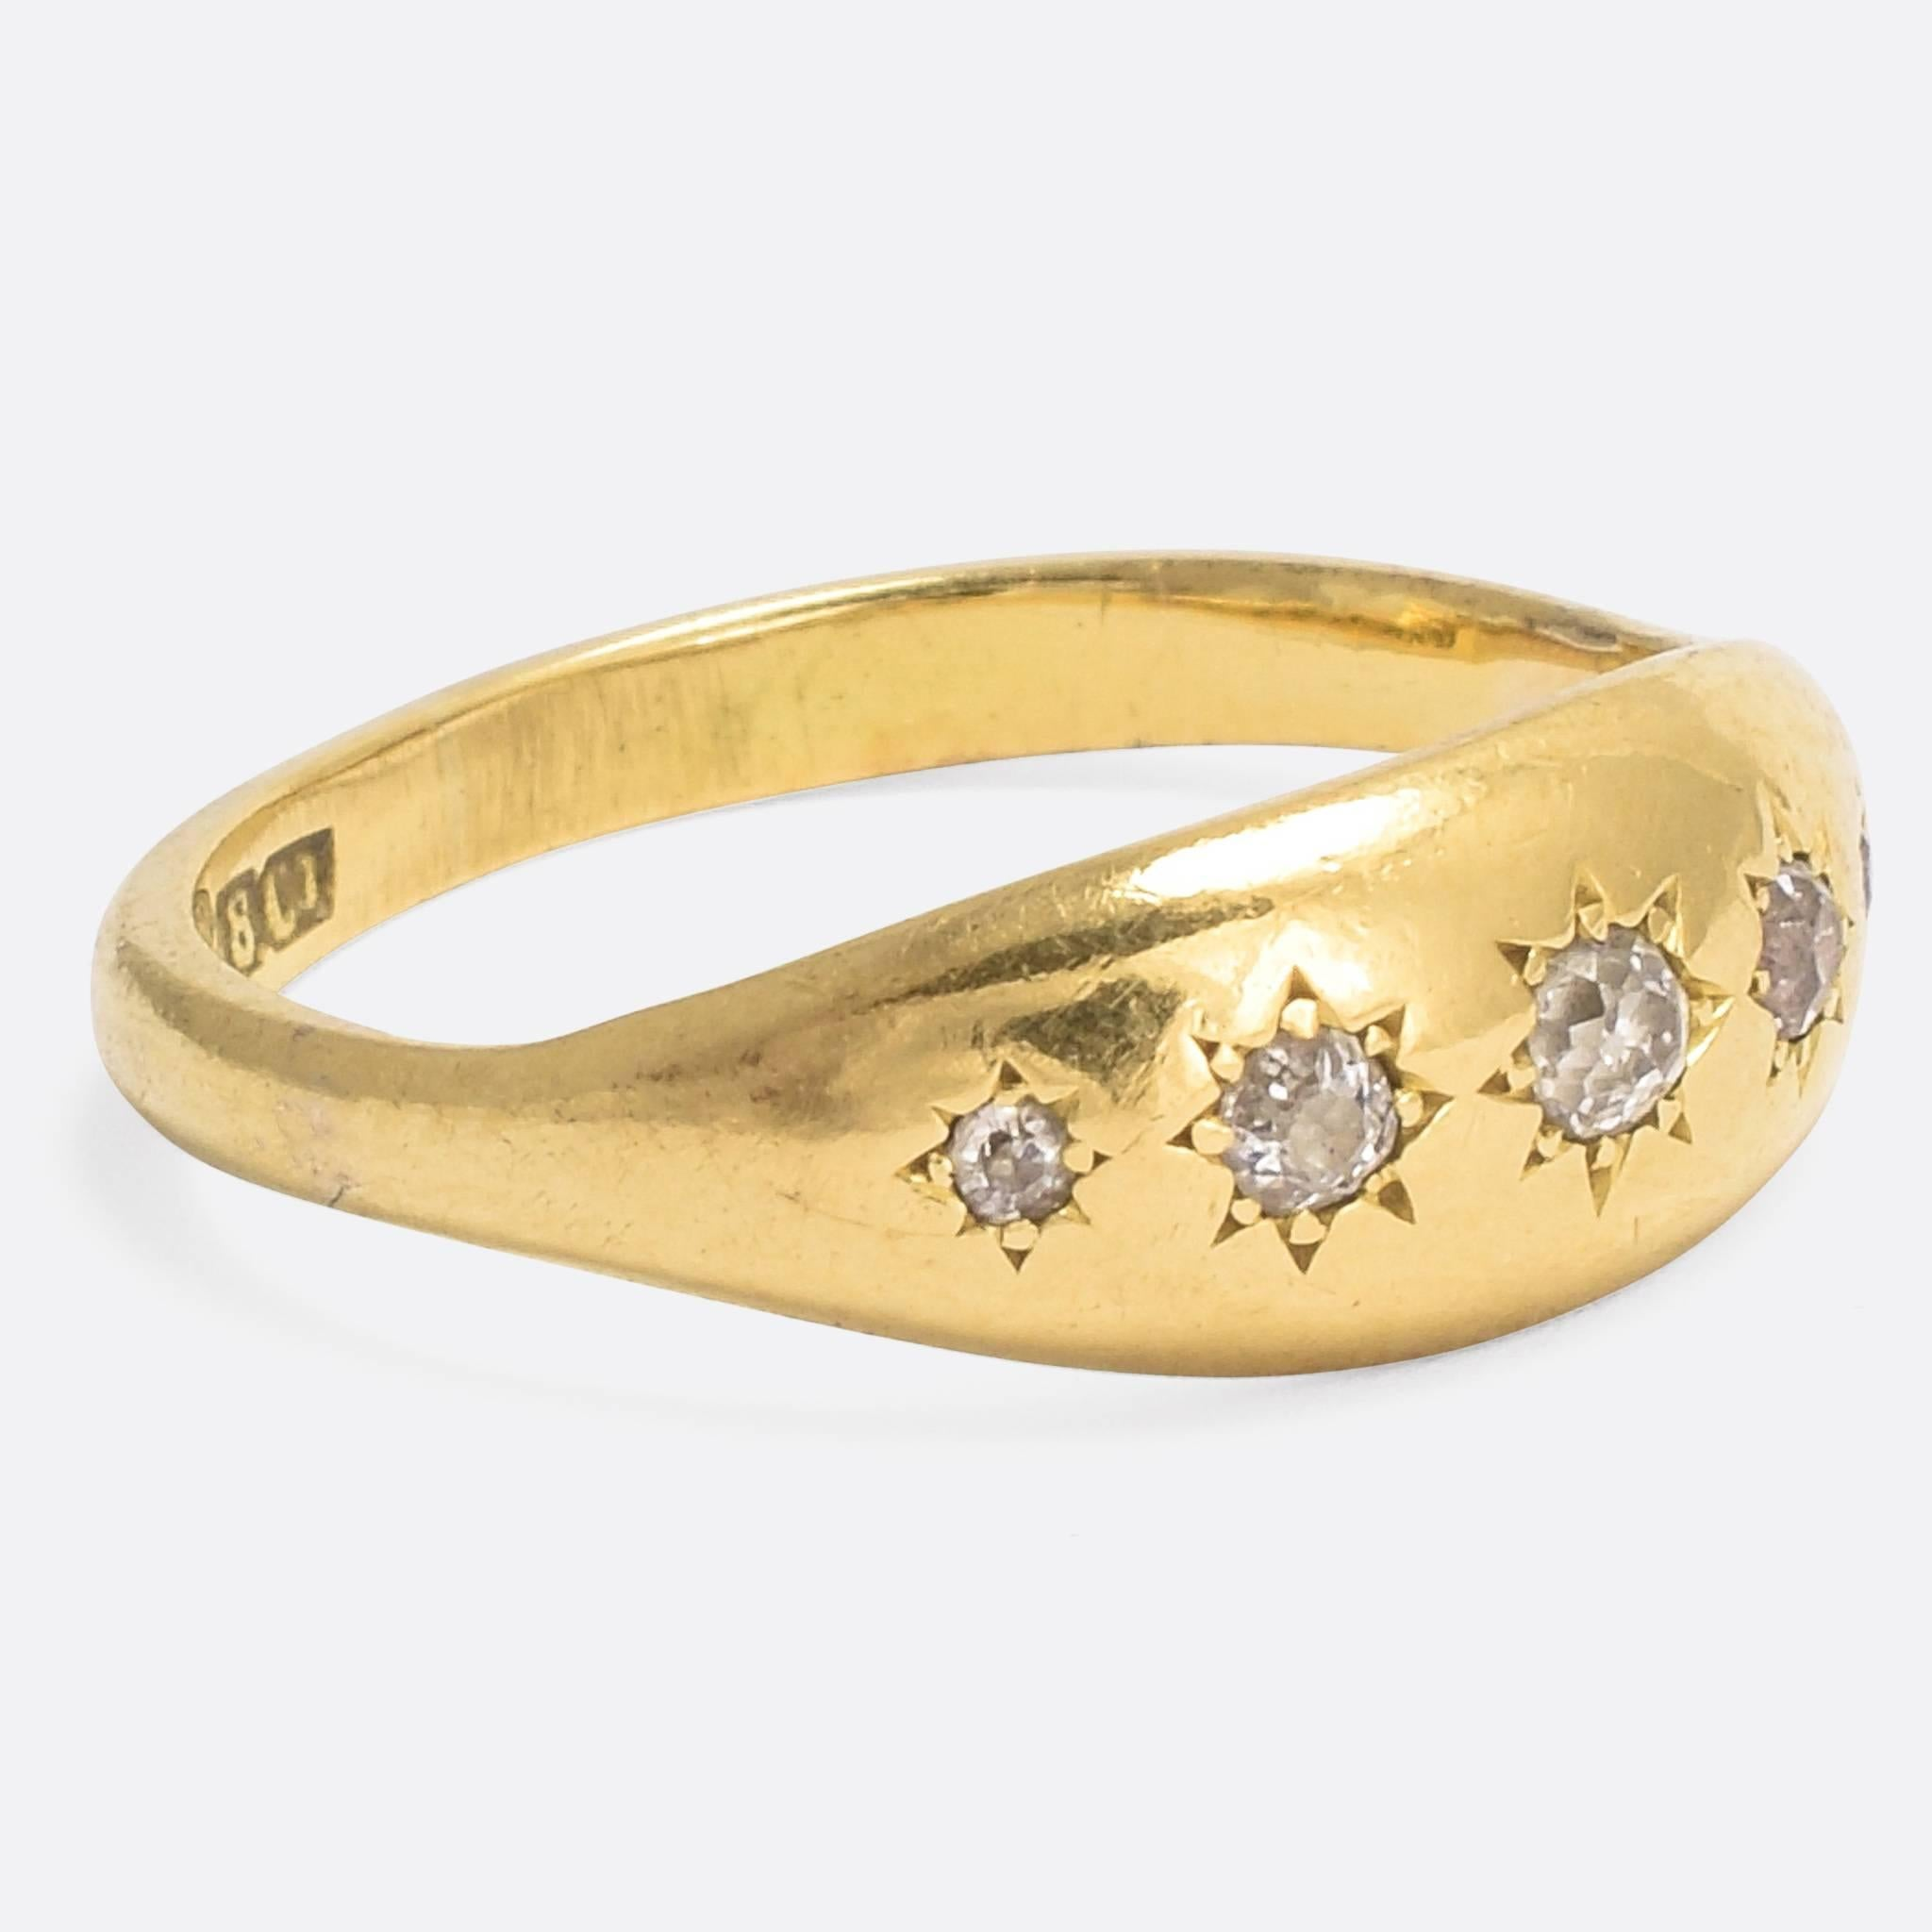 stones products radiant img engagement with diamond ring side gottlieb star stephanie bullet